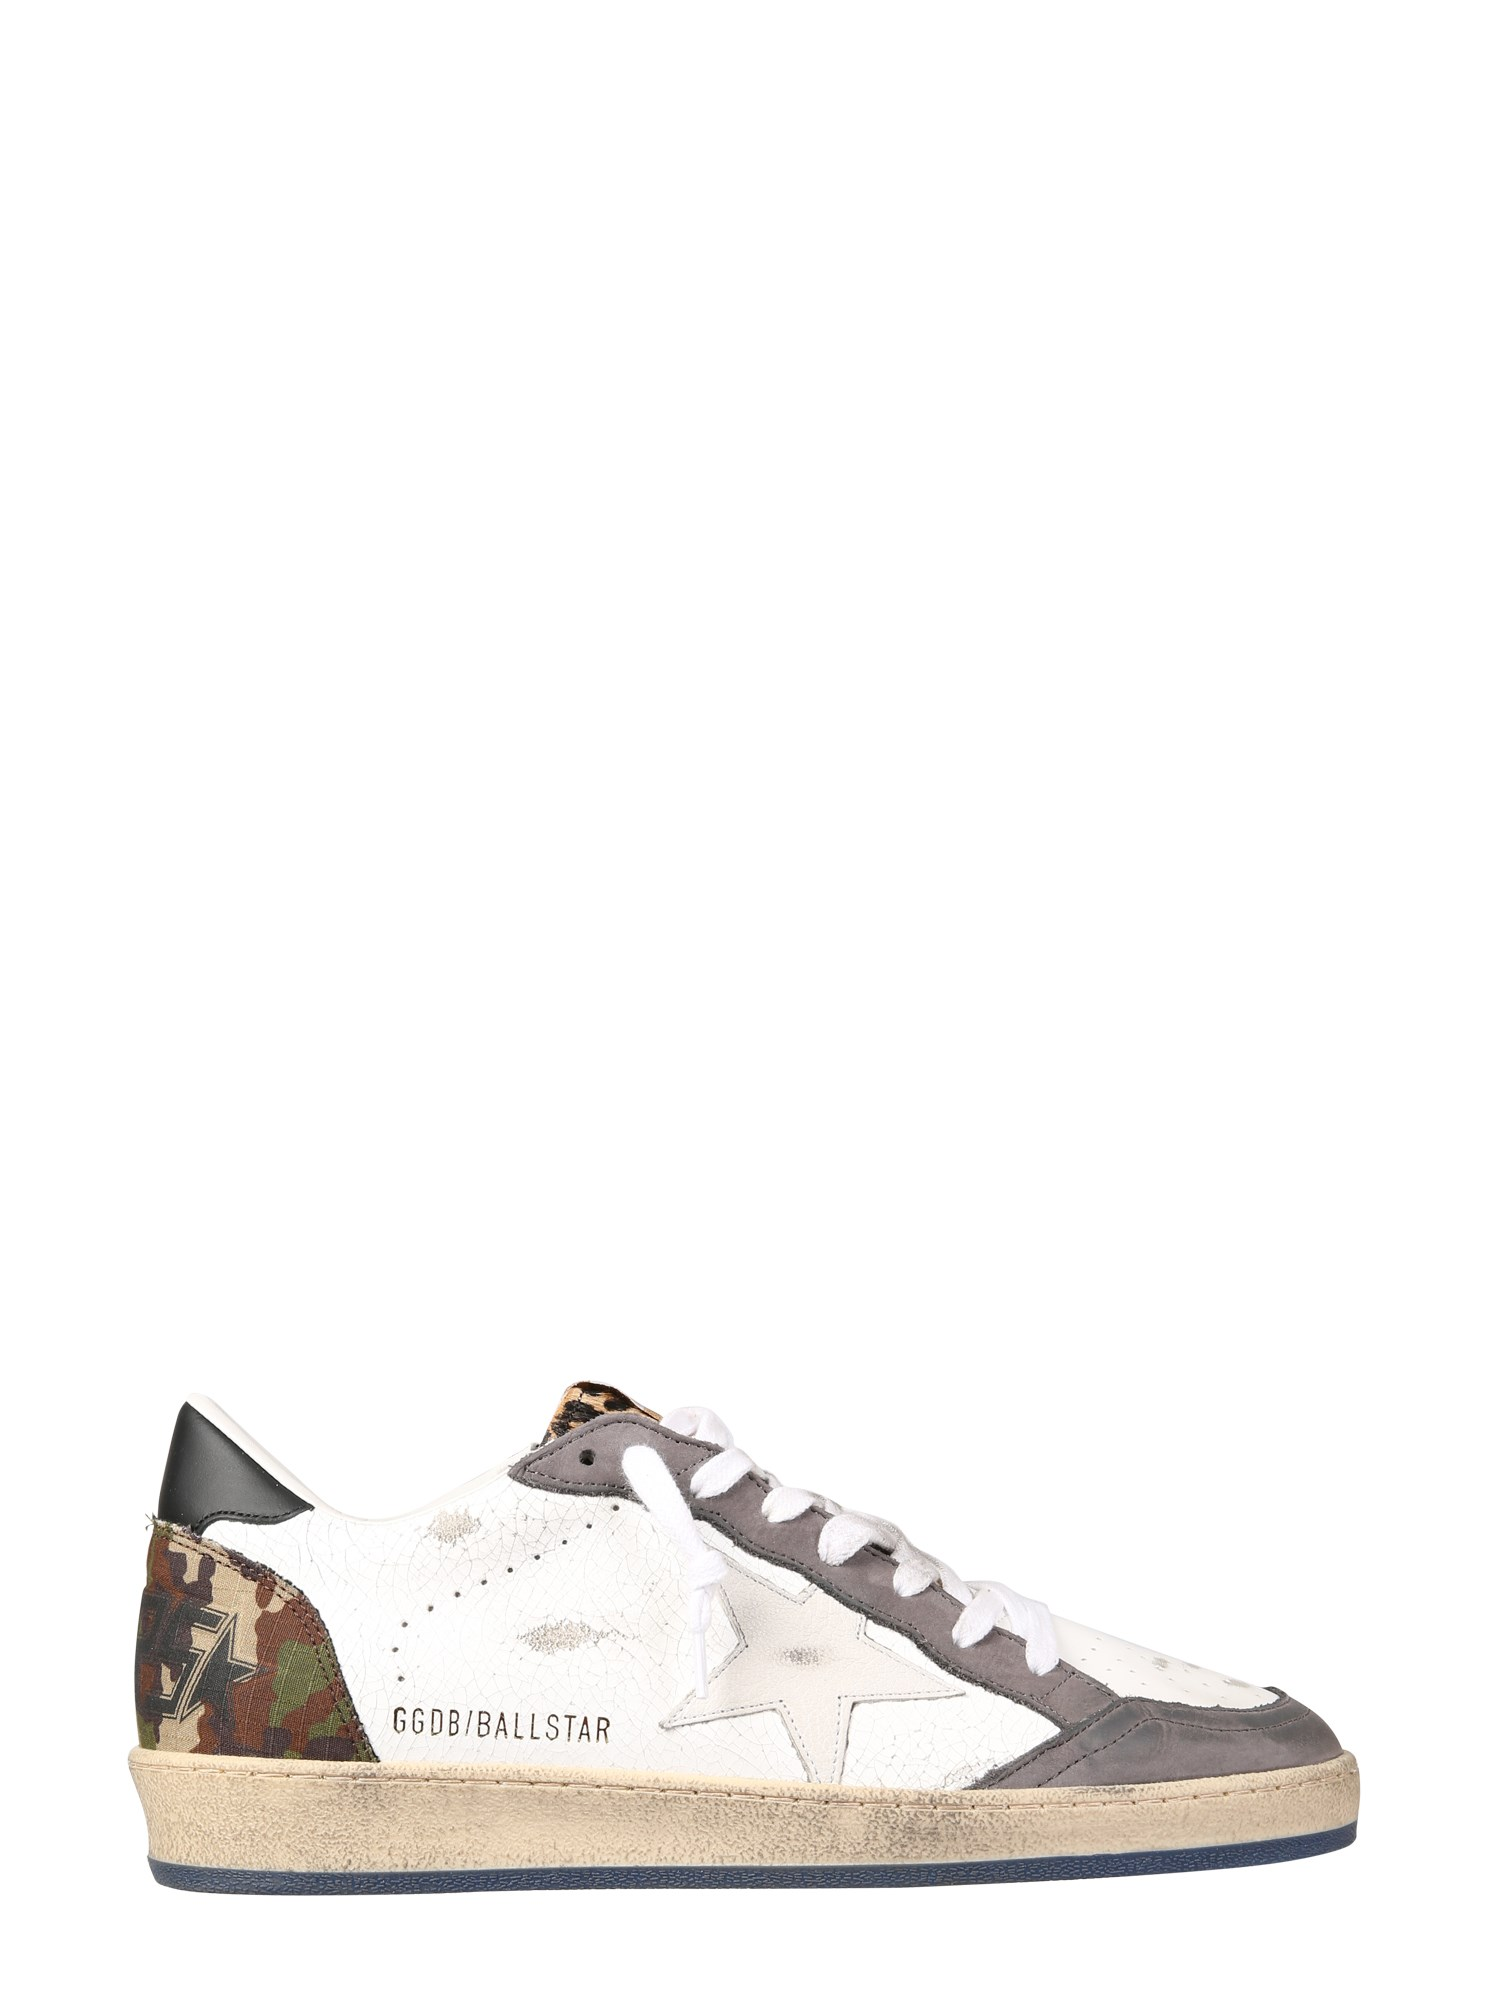 "Golden Goose ""BALL STAR"" SNEAKERS"